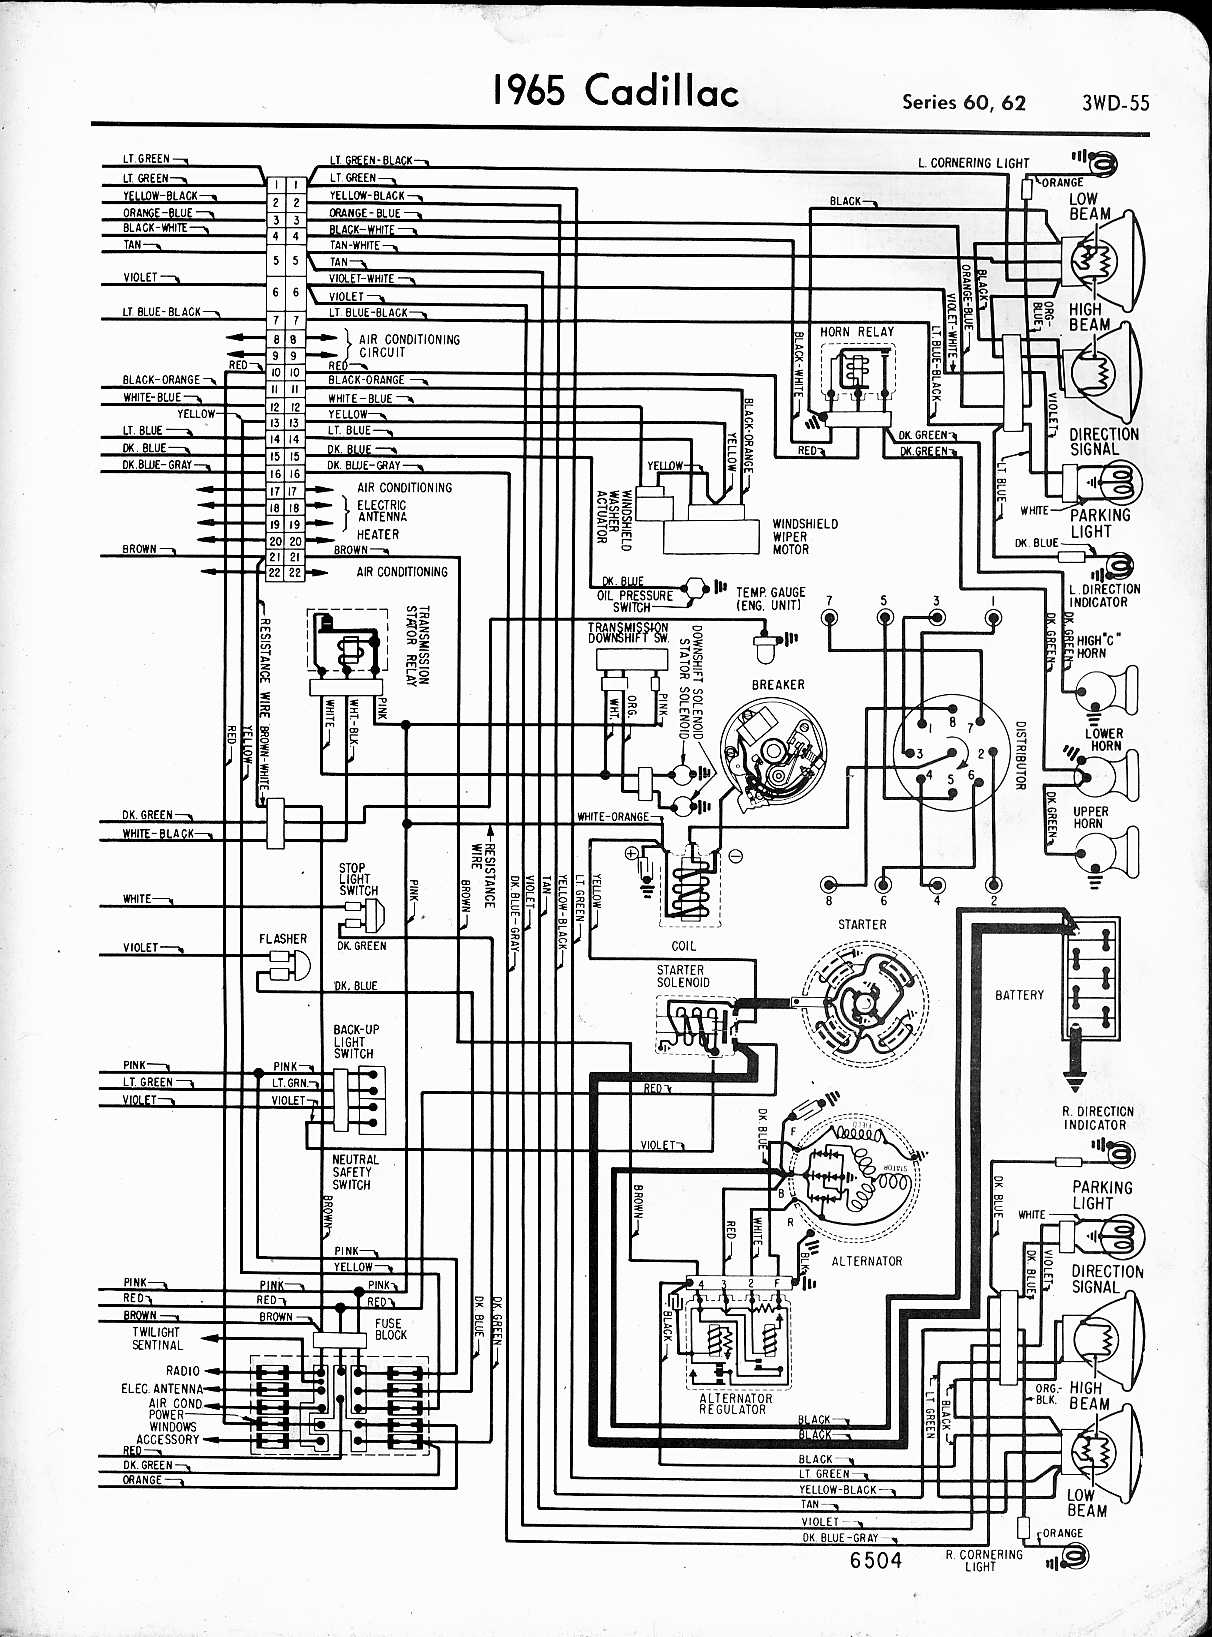 cadillac wiring diagrams 1957 1965 cadillac ignition diagram cadillac engine diagram #3